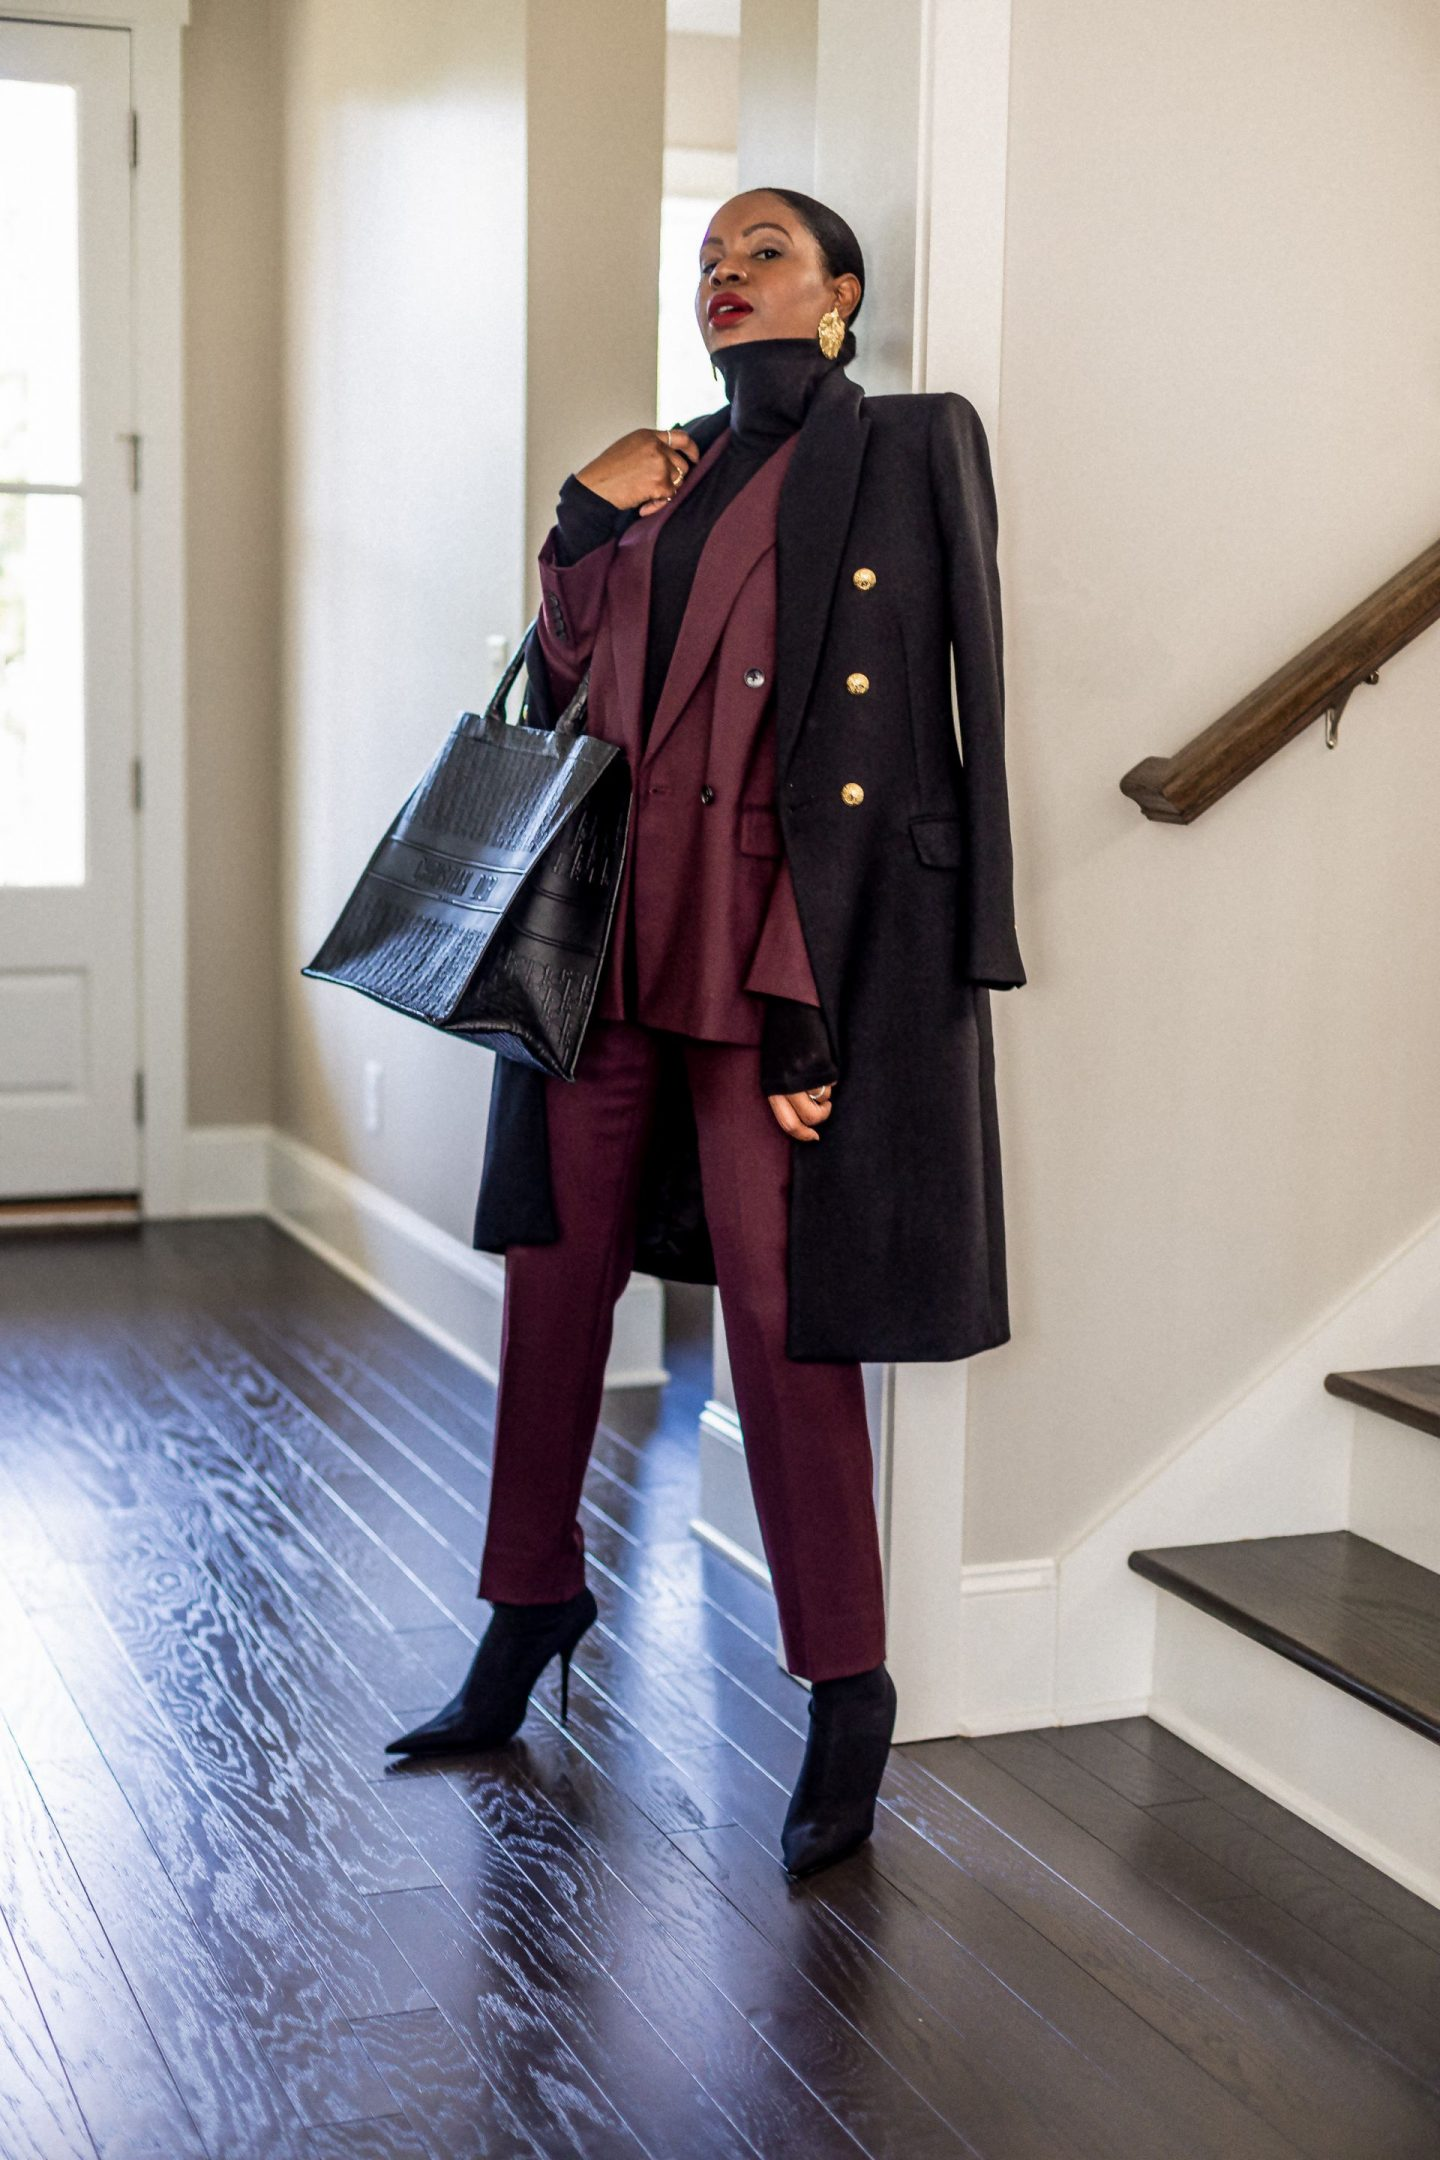 atlanta blogger wearing burgundy suit from m.m. lafleur, how to style a suit, what to wear to work, work looks, work outfits, work outfit inspiration, work lookbook what to wear to work, boy friend blazer, cigarette pants, how to style cigarette pants, zara coat, black coat, travel outfit, work travel outfit,